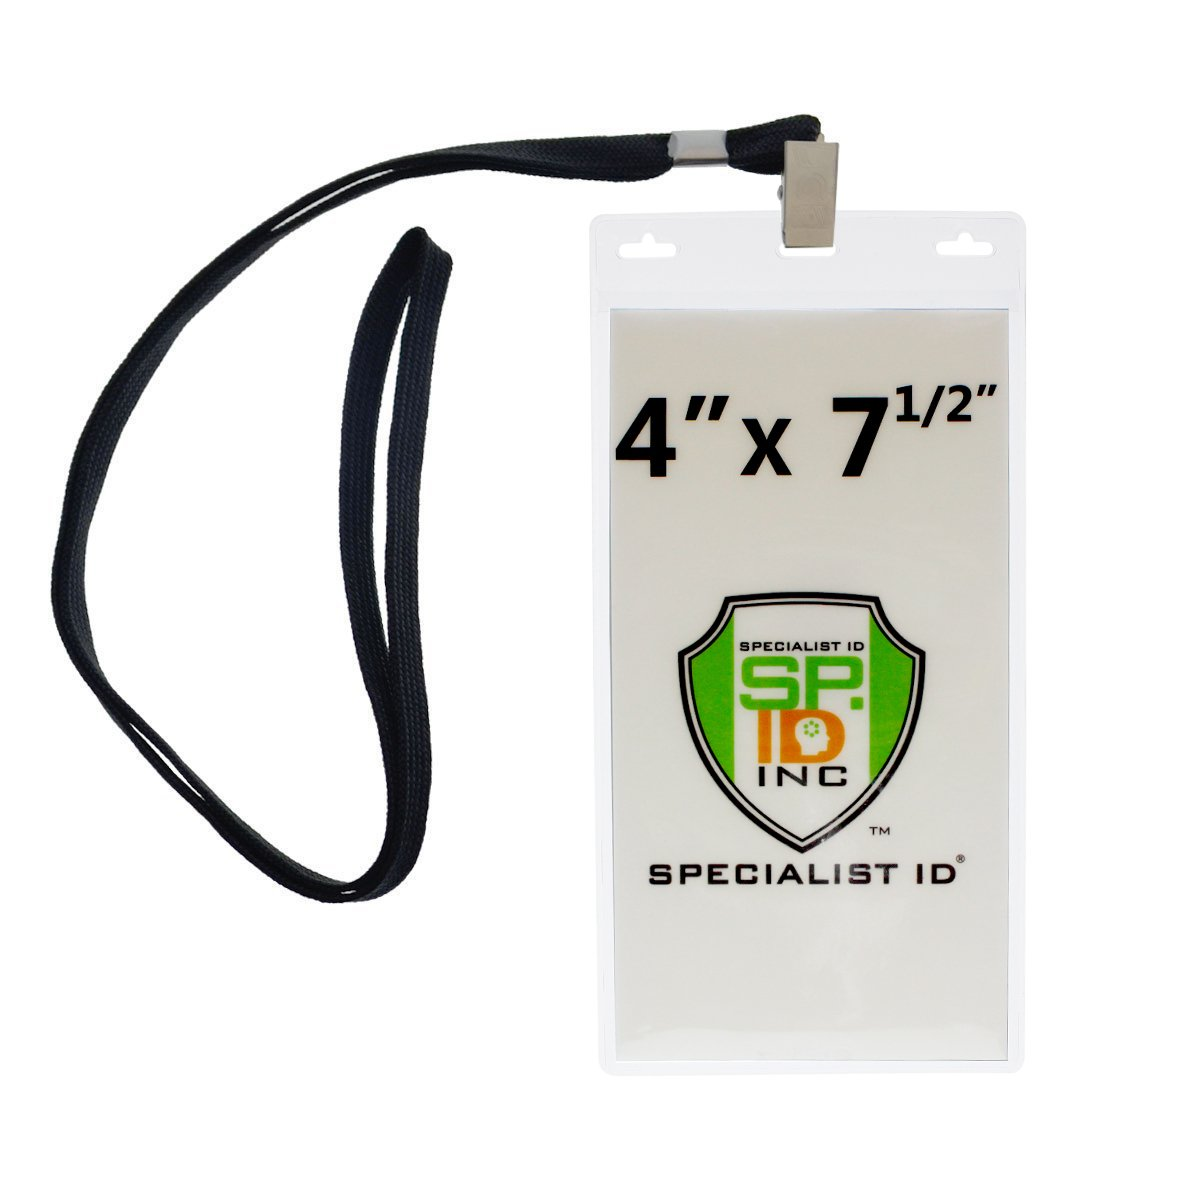 Lanyards with 4X7 Extra Large Ticket Holders for Pit Passes and Playoff Games (Pack of 10) (Black)